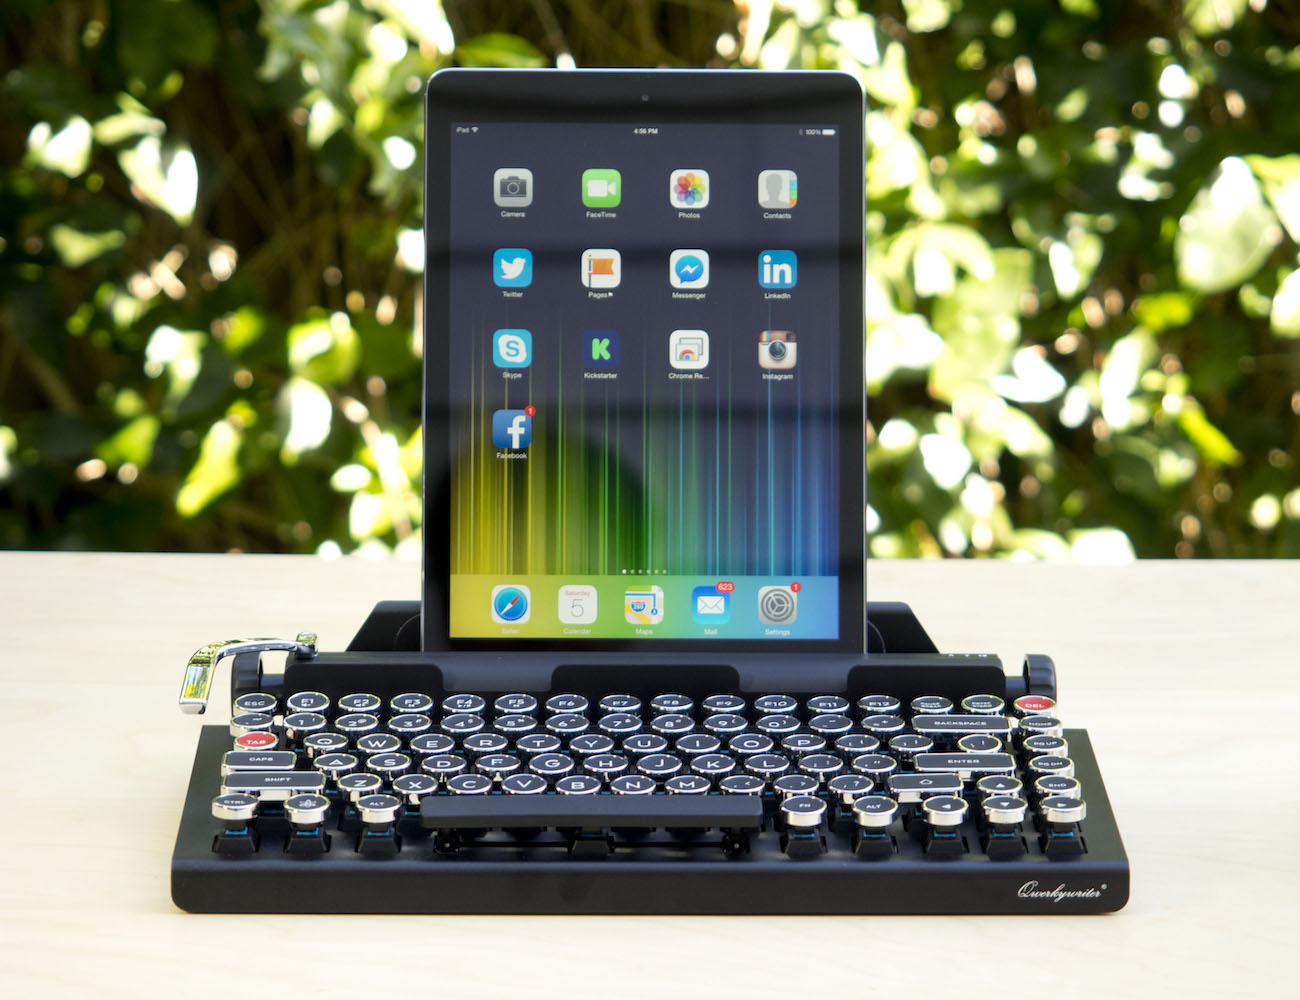 The Qwerkywriter Bluetooth Keyboard